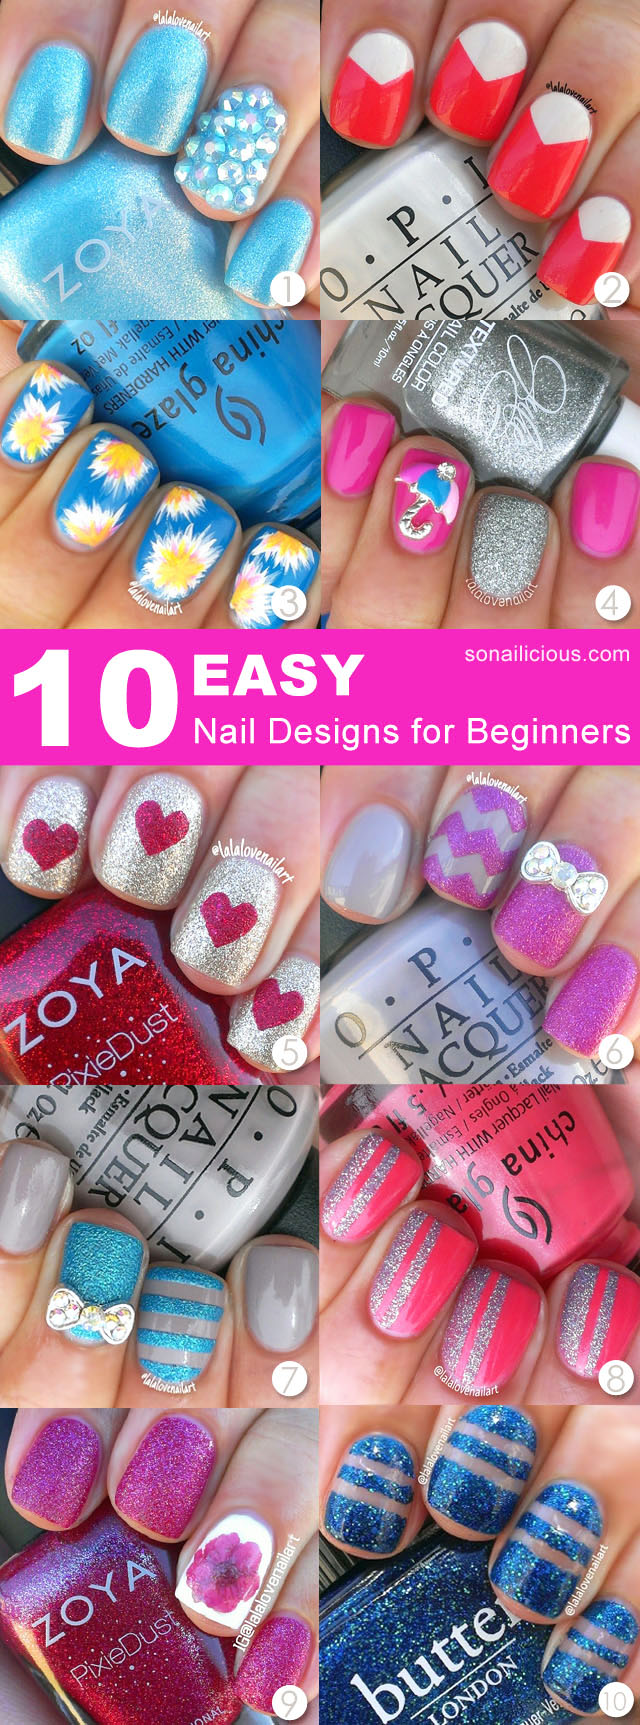 10 easy nail designs for beginners